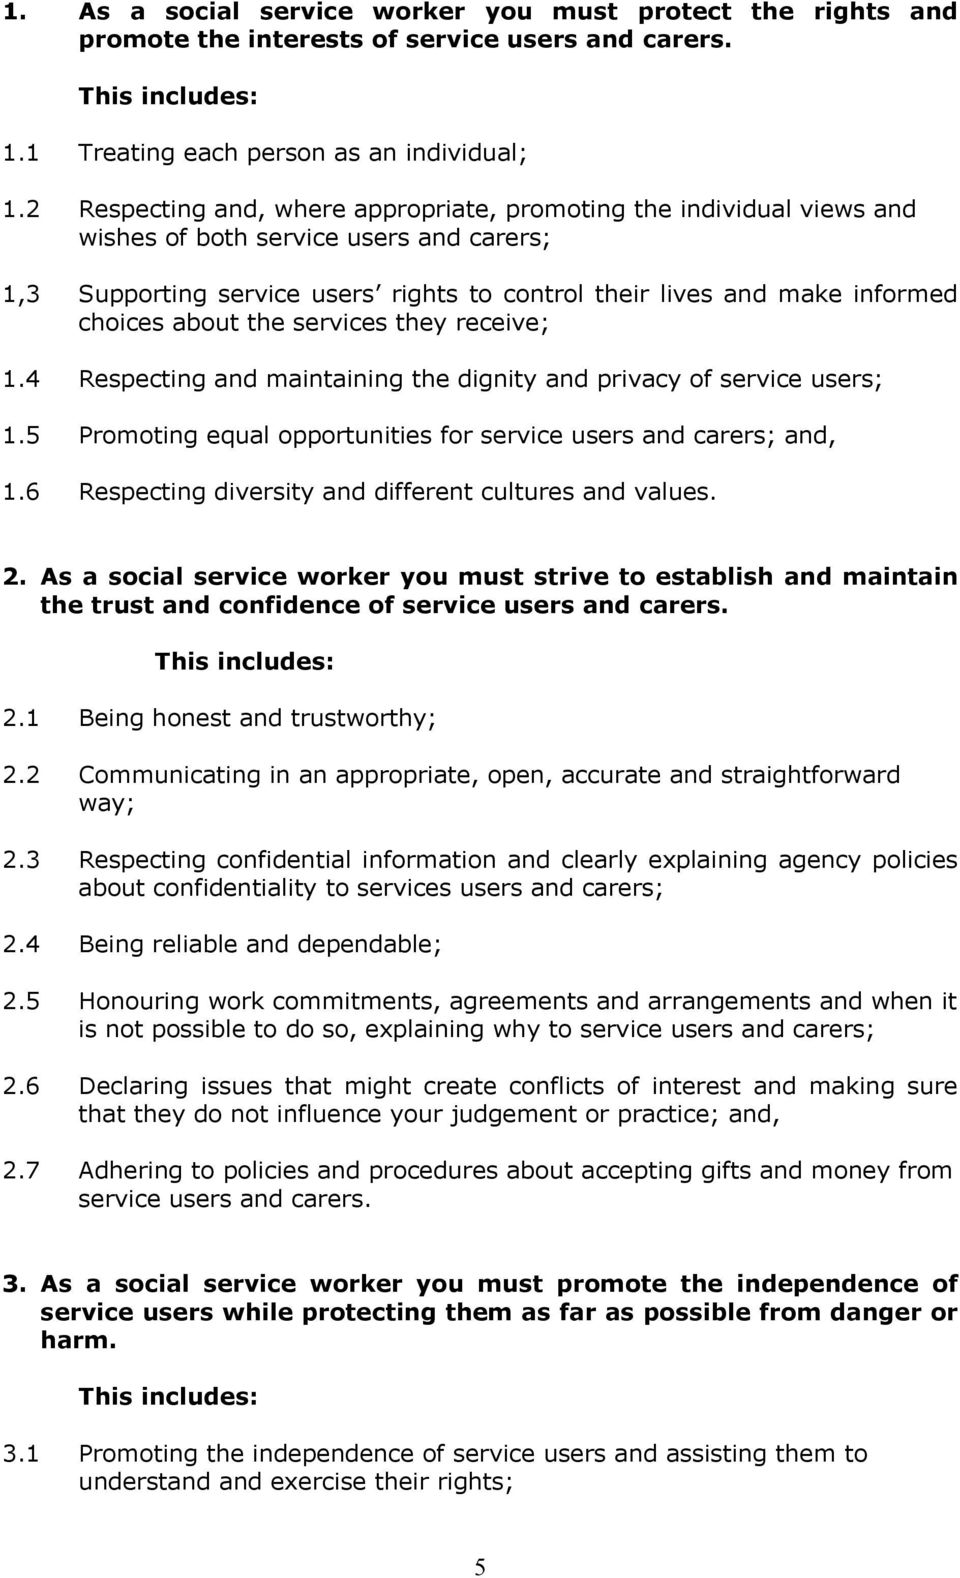 about the services they receive; 1.4 Respecting and maintaining the dignity and privacy of service users; 1.5 Promoting equal opportunities for service users and carers; and, 1.